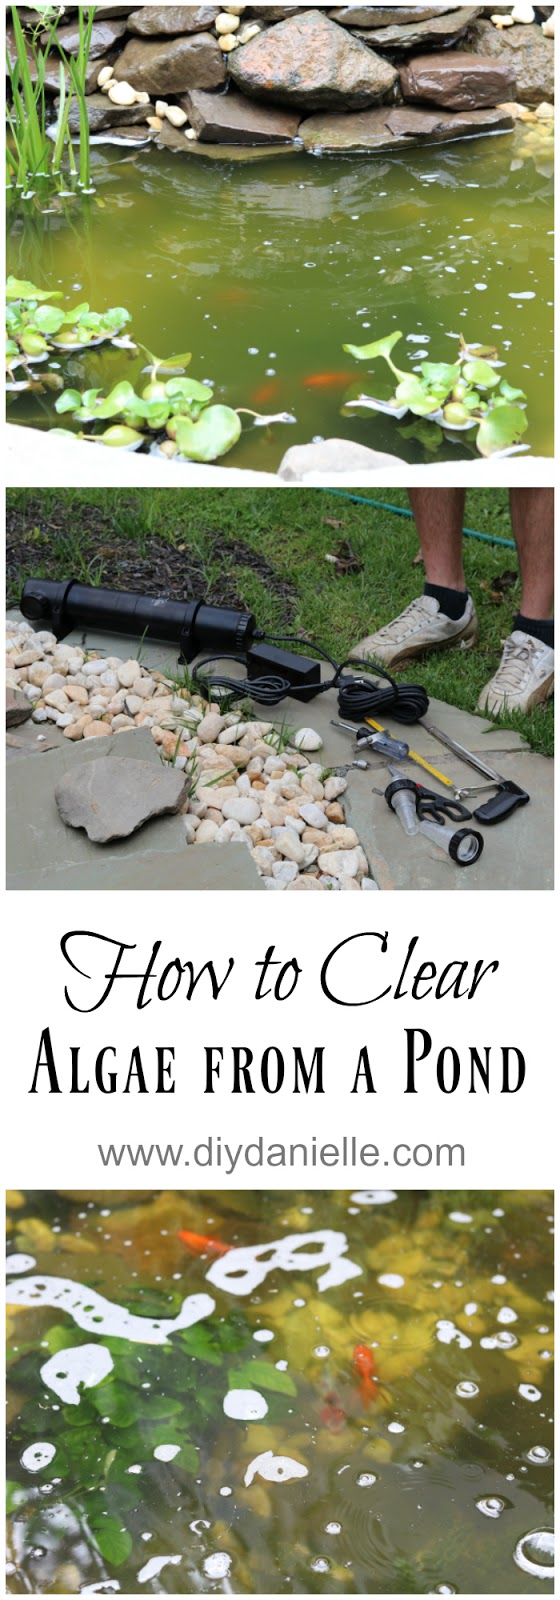 clearing algae from a pond with a uv light diy danielle. Black Bedroom Furniture Sets. Home Design Ideas